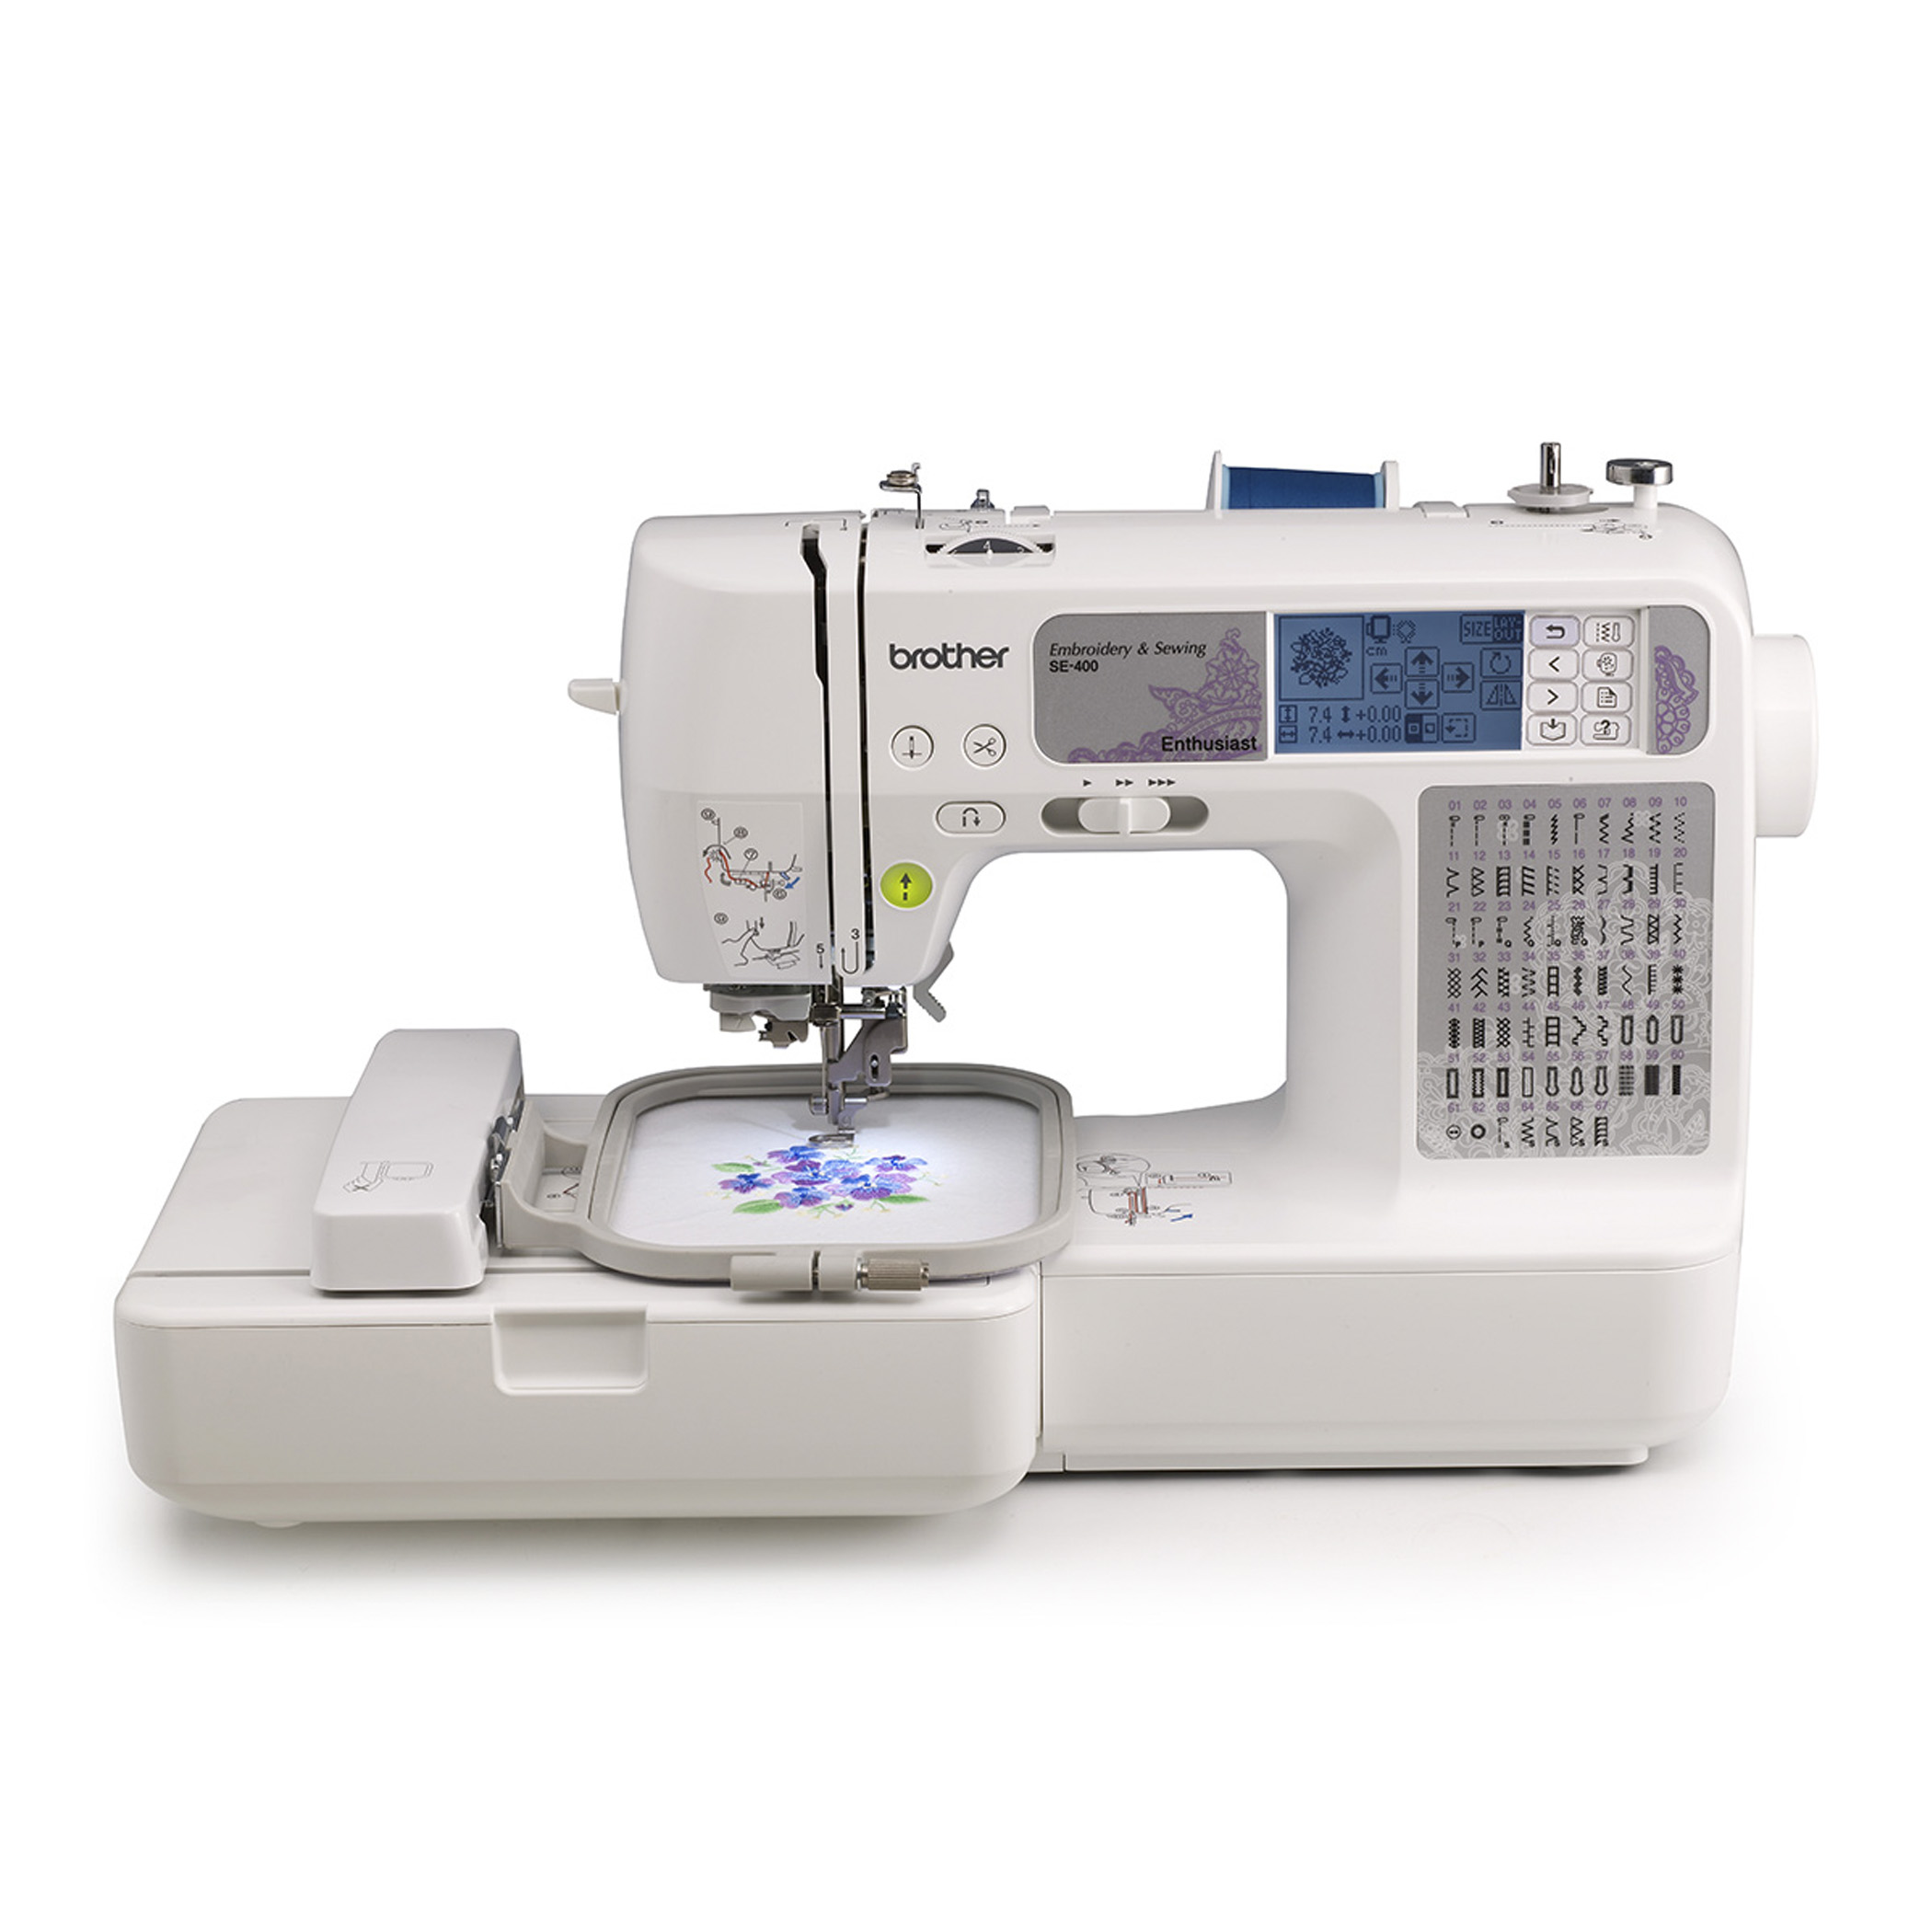 Brother Computerized Sewing And Embroidery Machine SE-400 - Walmart.com